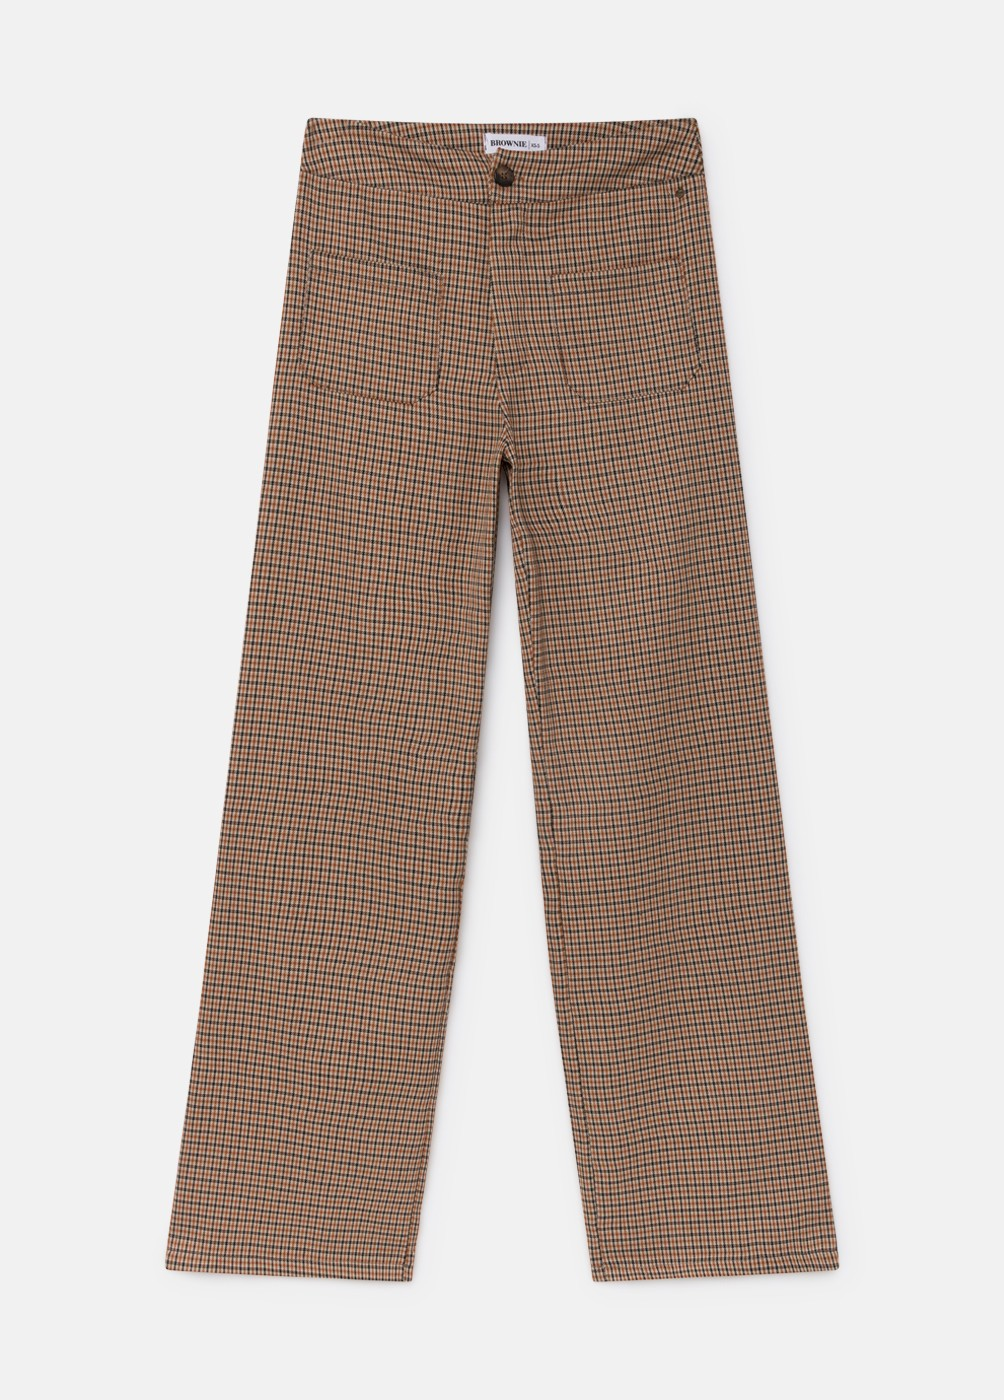 BRITISH POCKET CHECKED TROUSERS